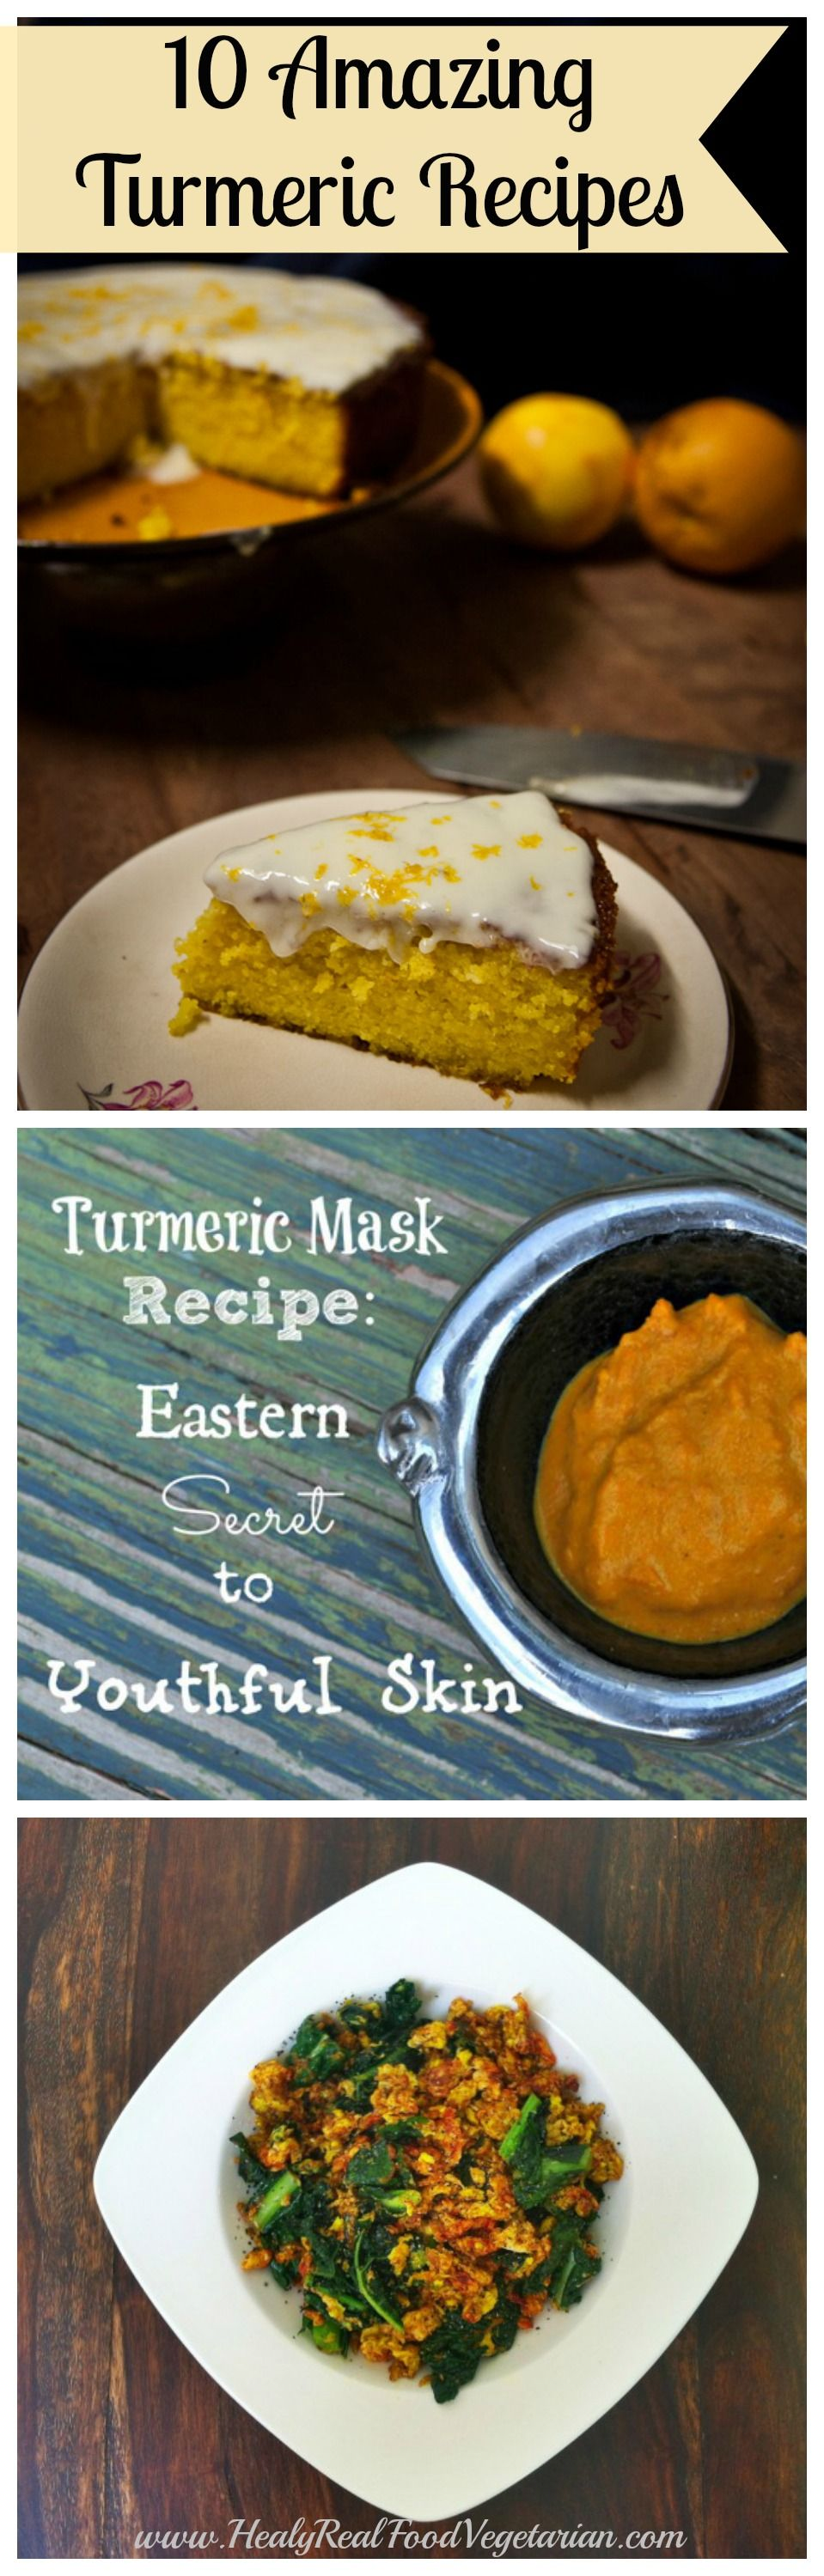 10 amazing turmeric recipes turmeric recipes turmeric and real 10 amazing turmeric recipes healy real food vegetarian i pinned this for the orange gluten free turmeric cake forumfinder Gallery